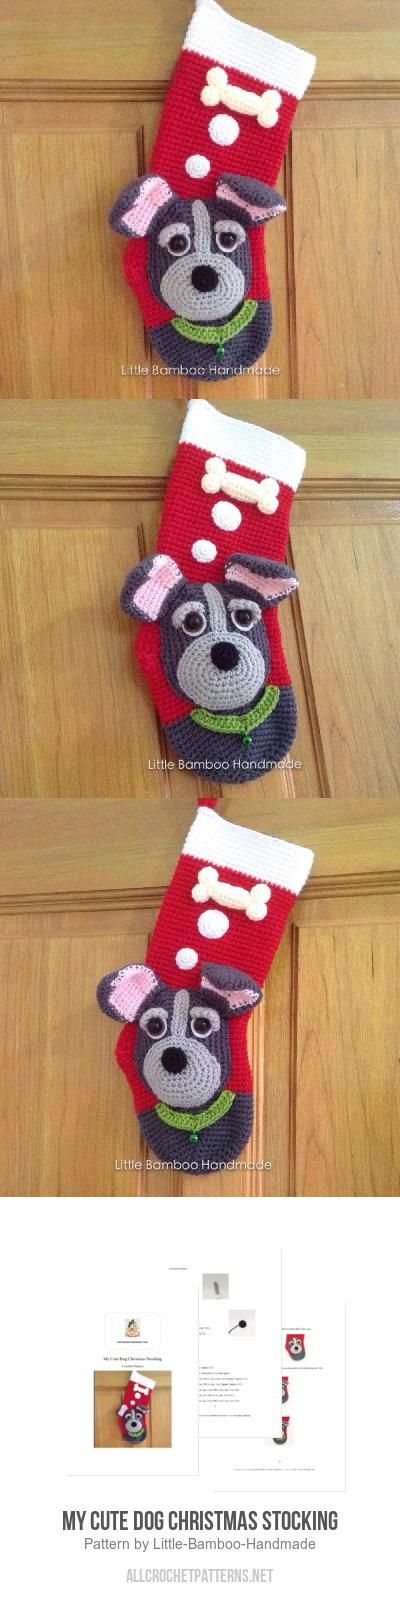 My Cute Dog Christmas Stocking crochet pattern